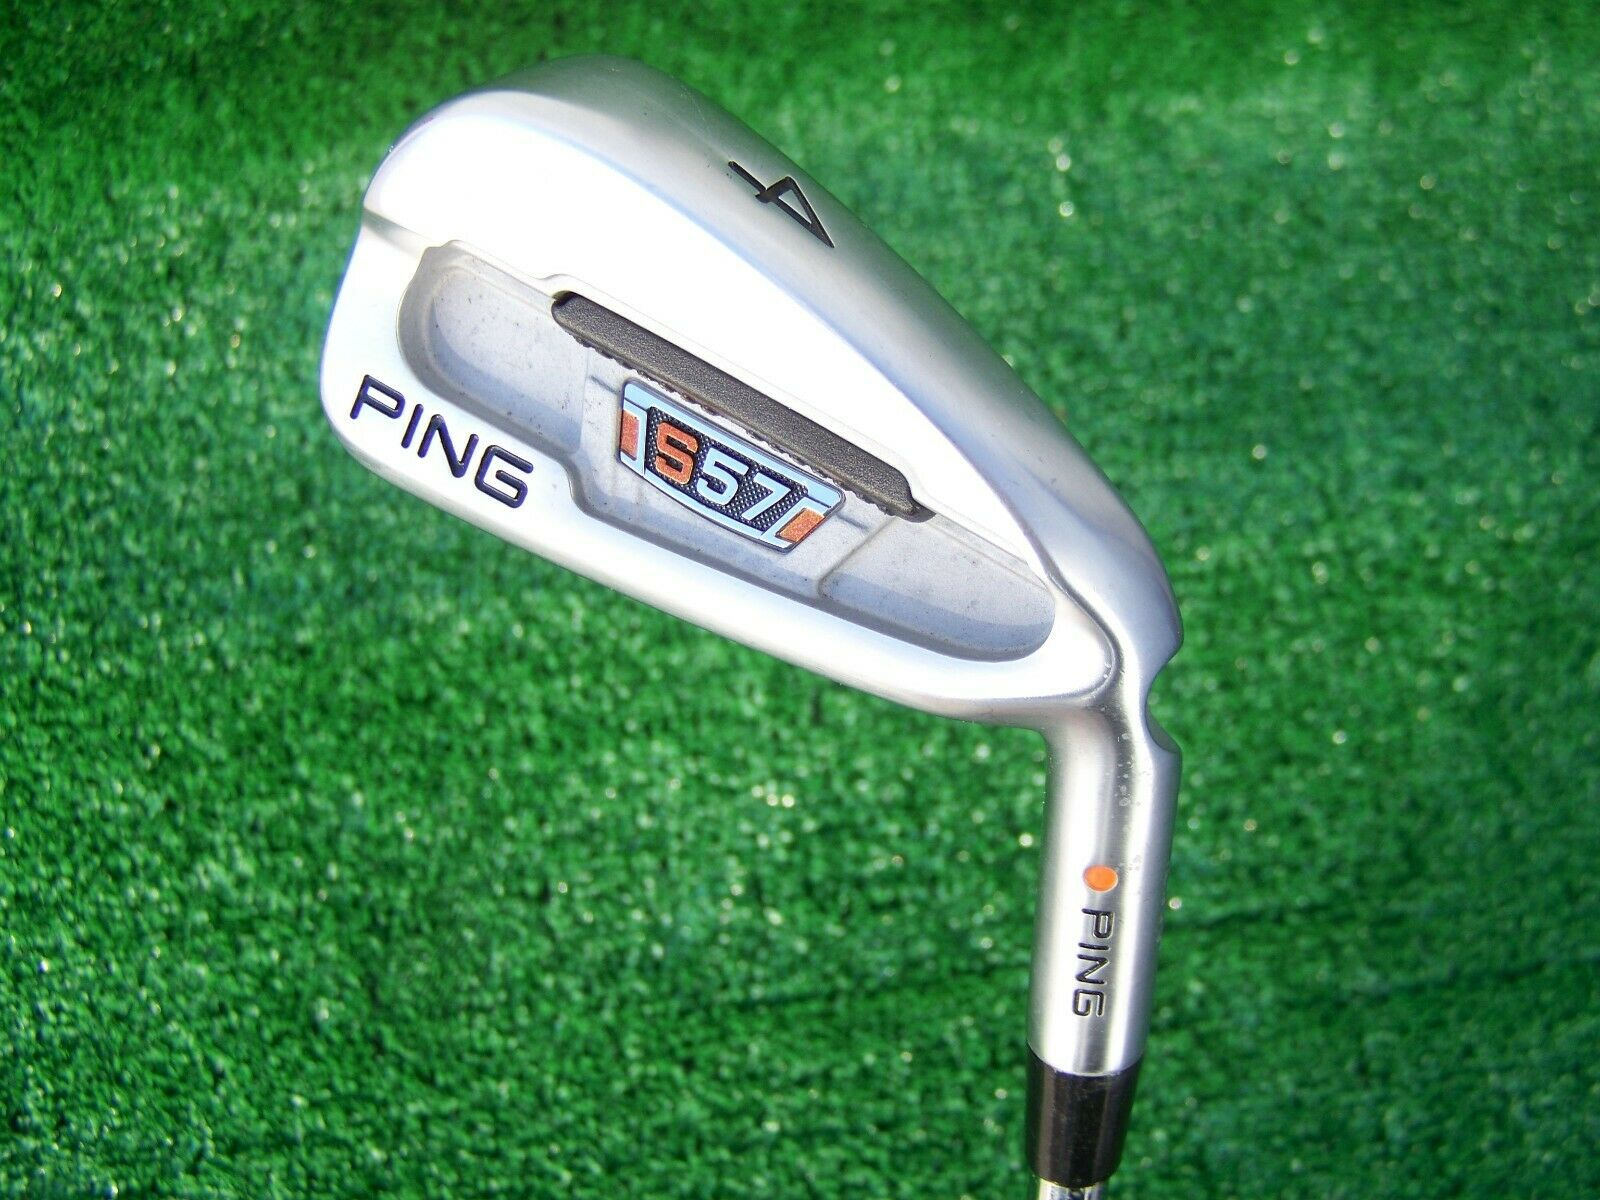 Ping Golf S57 review